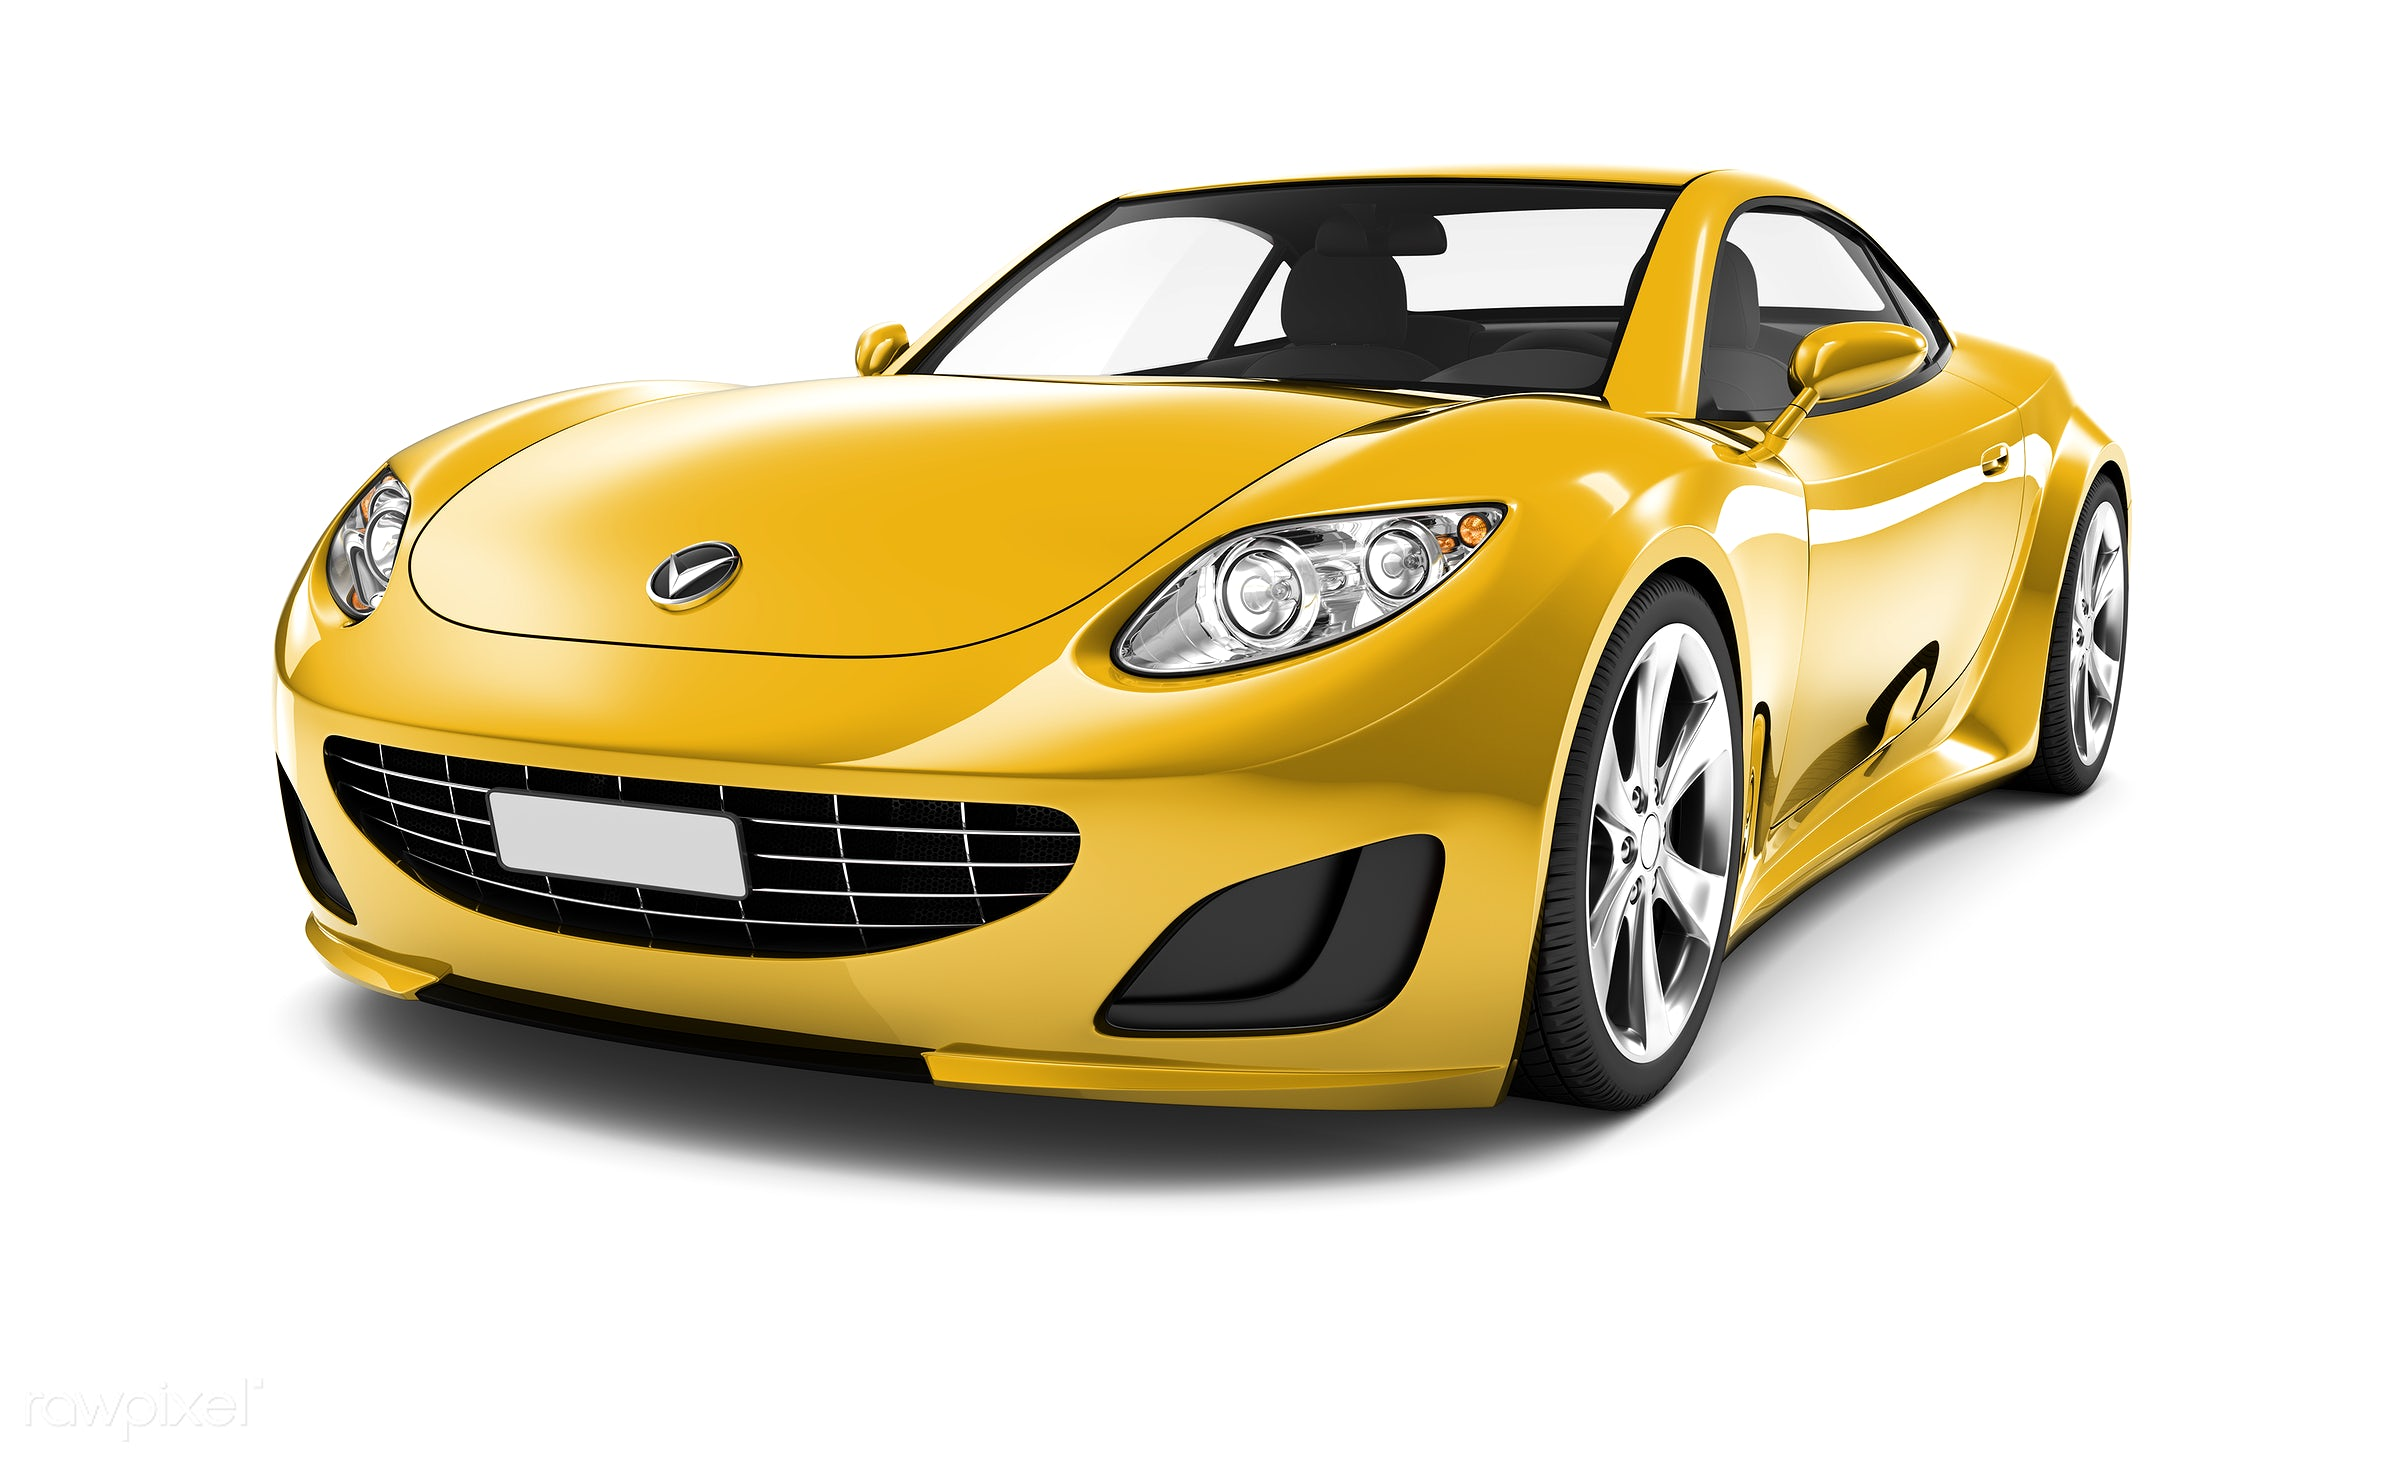 Three dimensional image of car - car, 3d, automobile, automotive, brandless, concept car, elegant, graphic, holiday,...